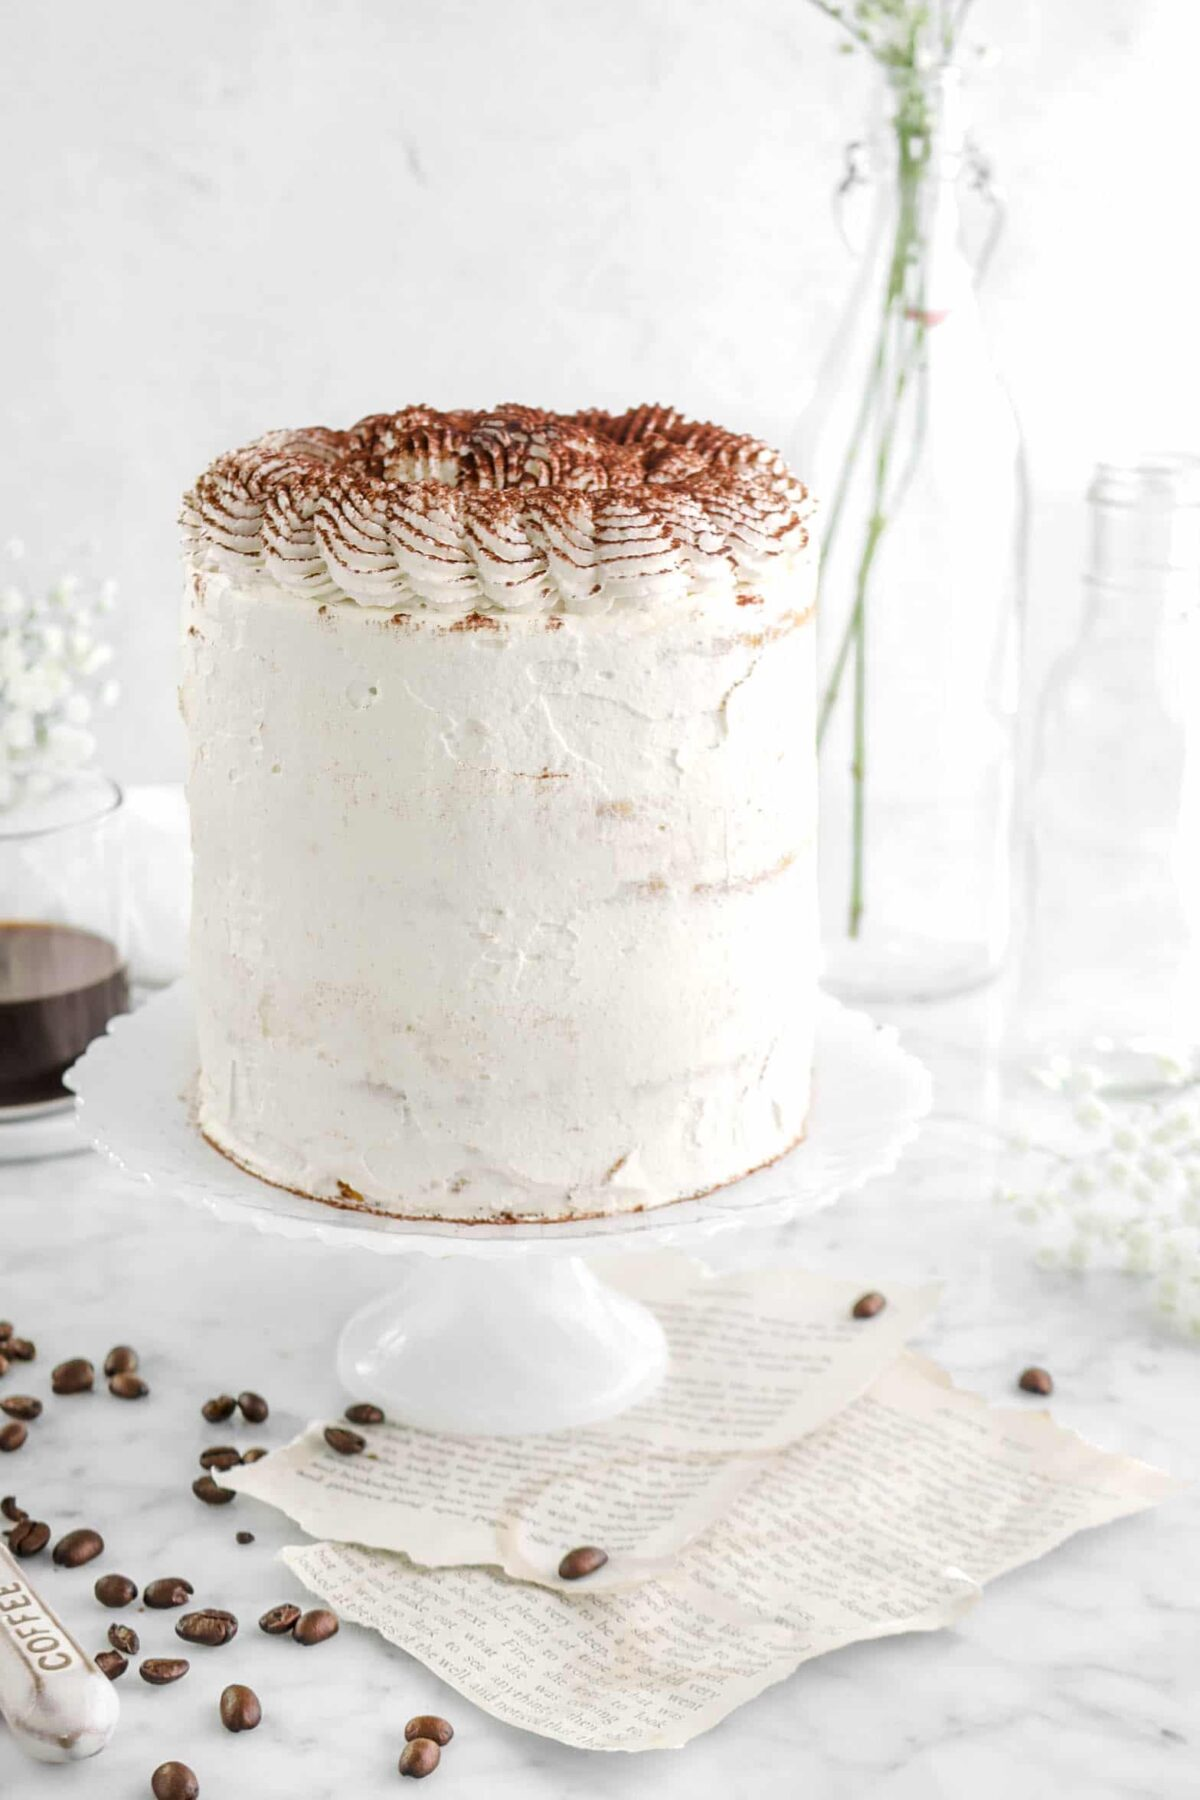 close up of tiramisu layer cake on white cake stand with book pages, flowers, and coffee beans